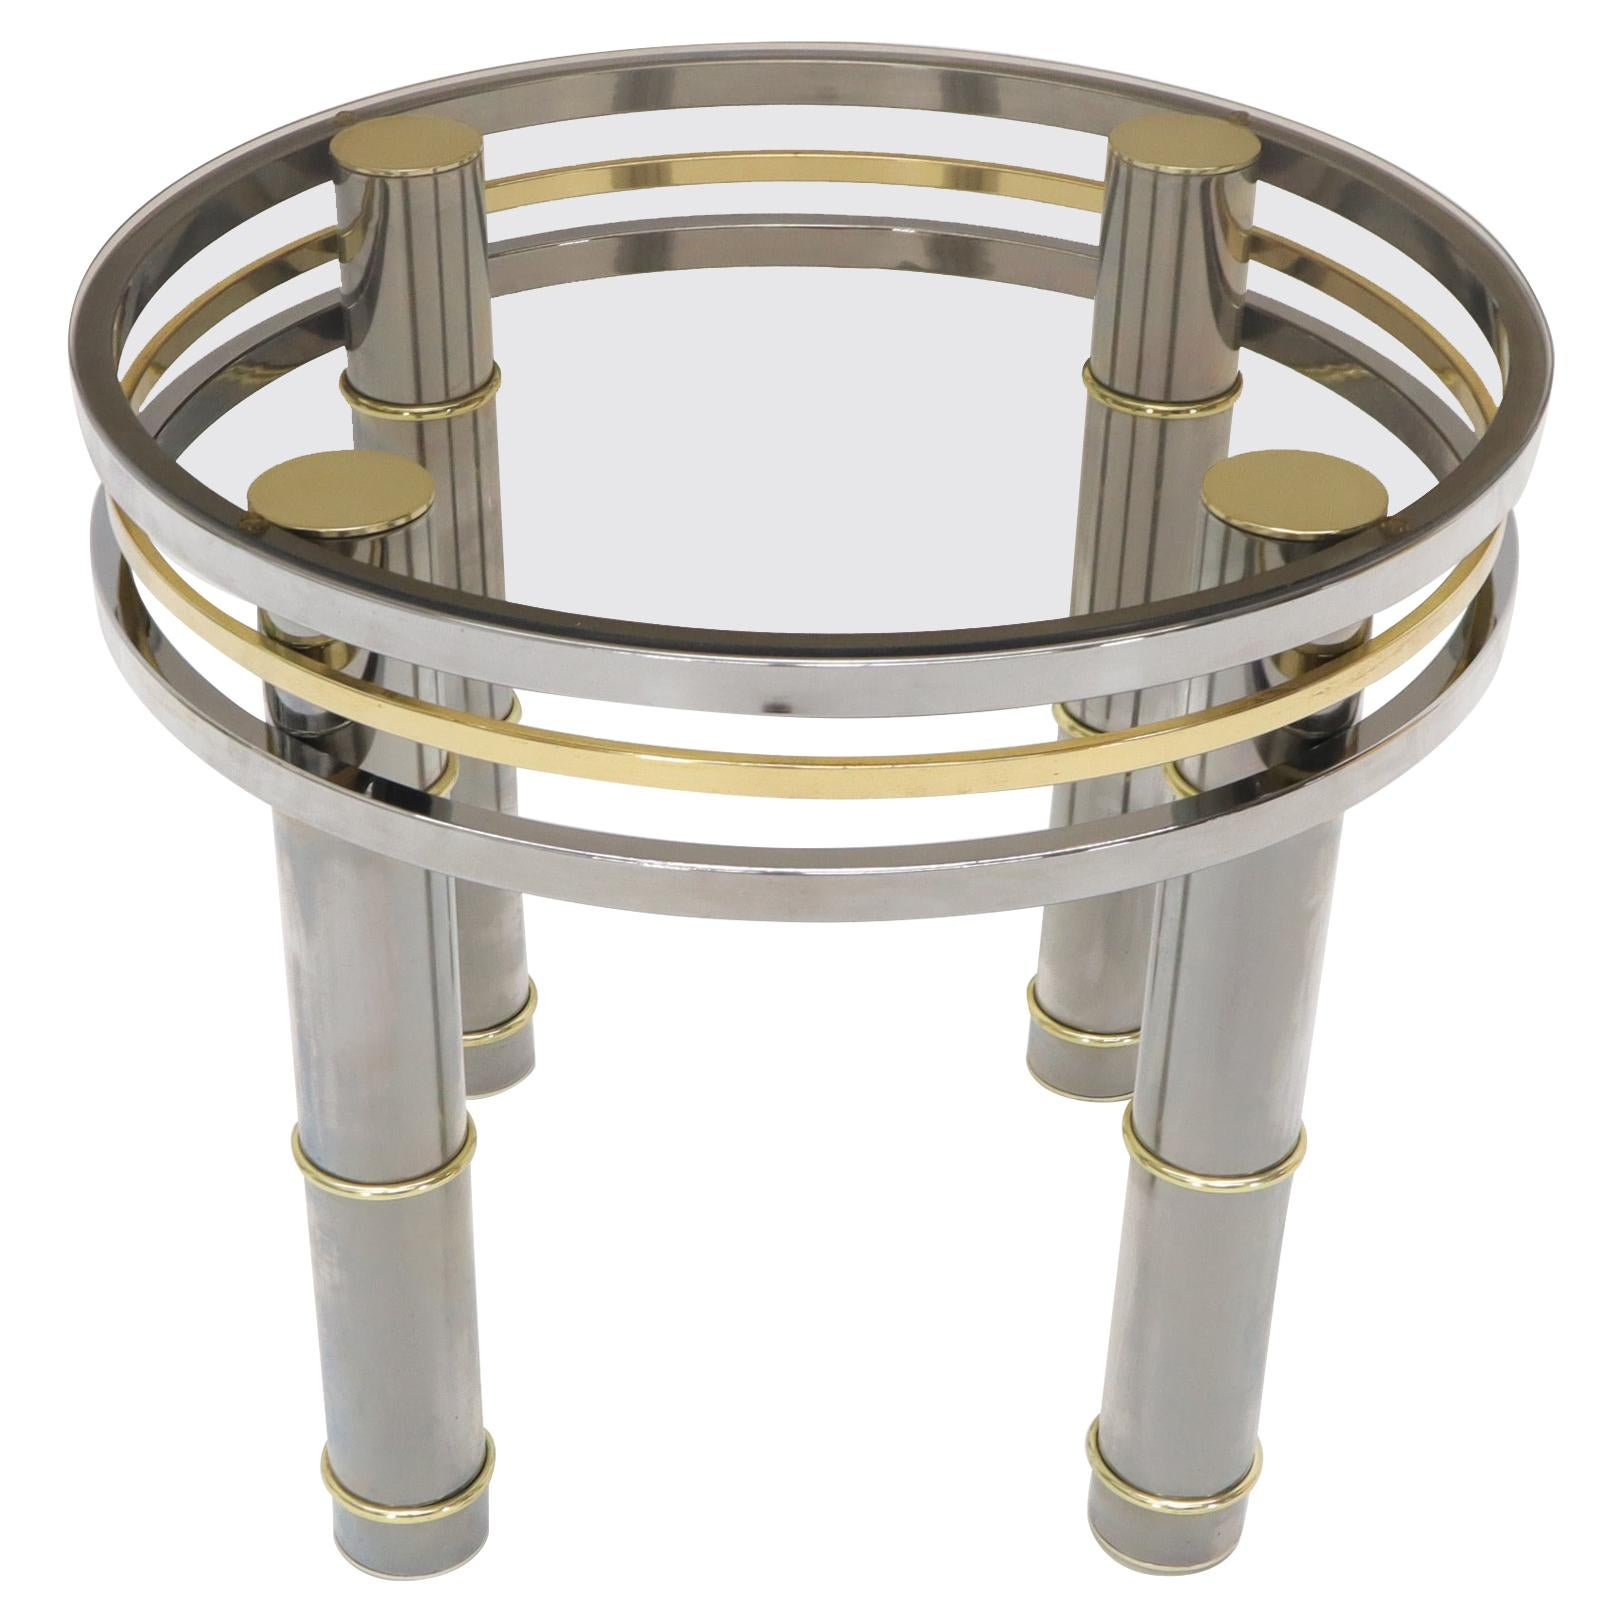 Chrome Brass Smoked Glass Round Side Table Stand